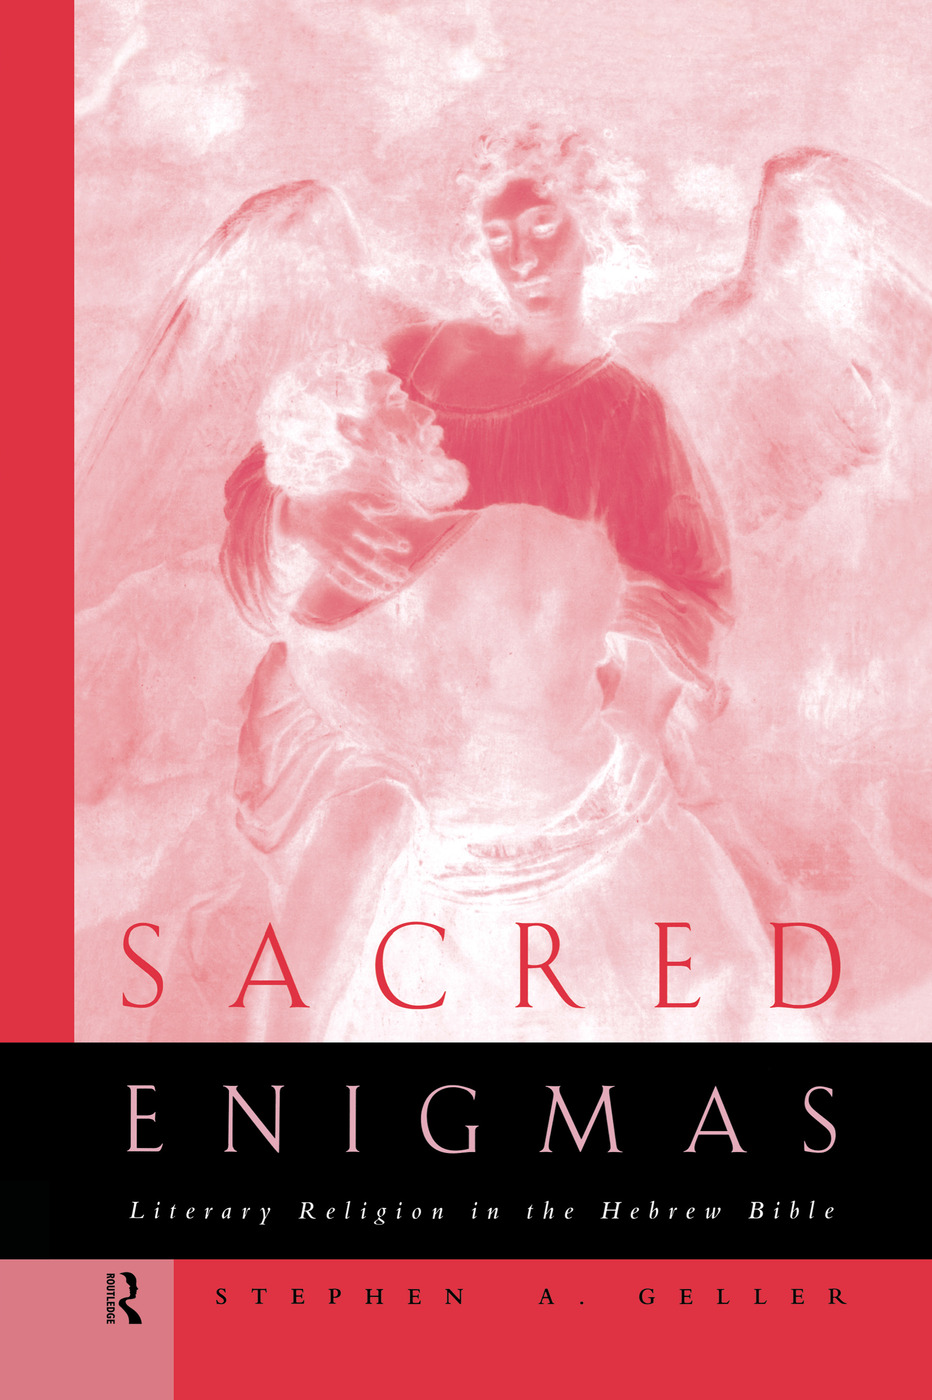 Sacred Enigmas: Literary Religion in the Hebrew Bible book cover